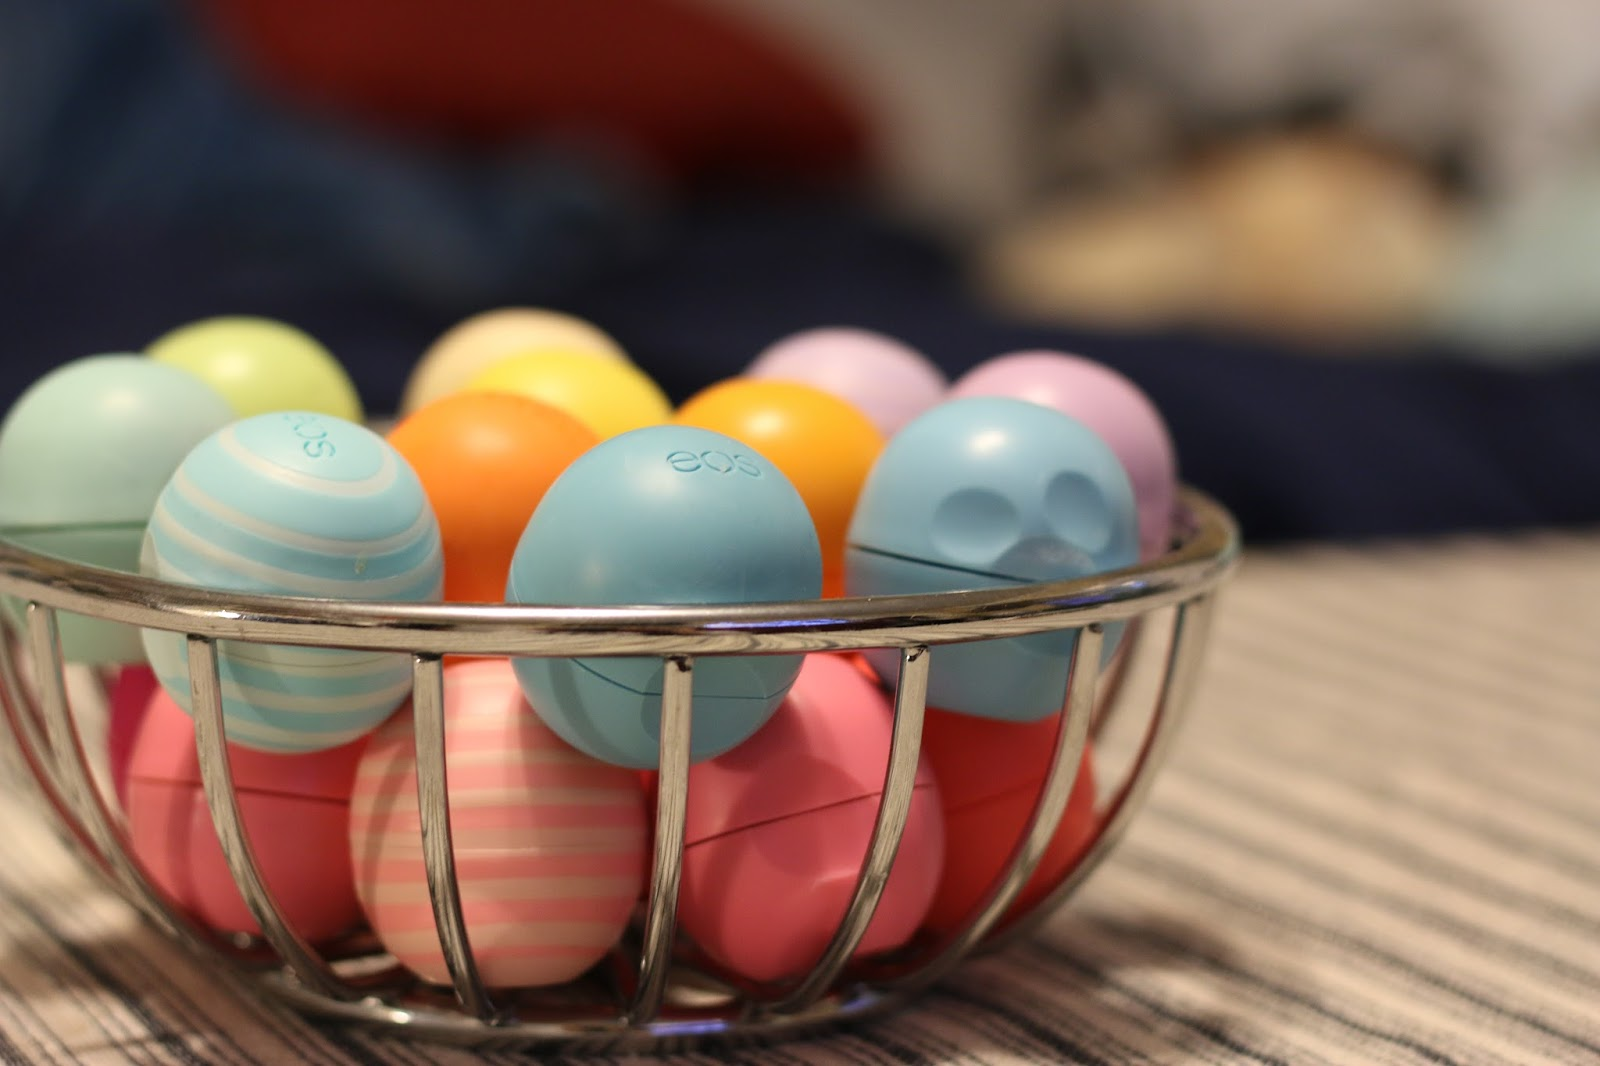 Stella, May I know how you have all the EOS lip balms? | Stella May I